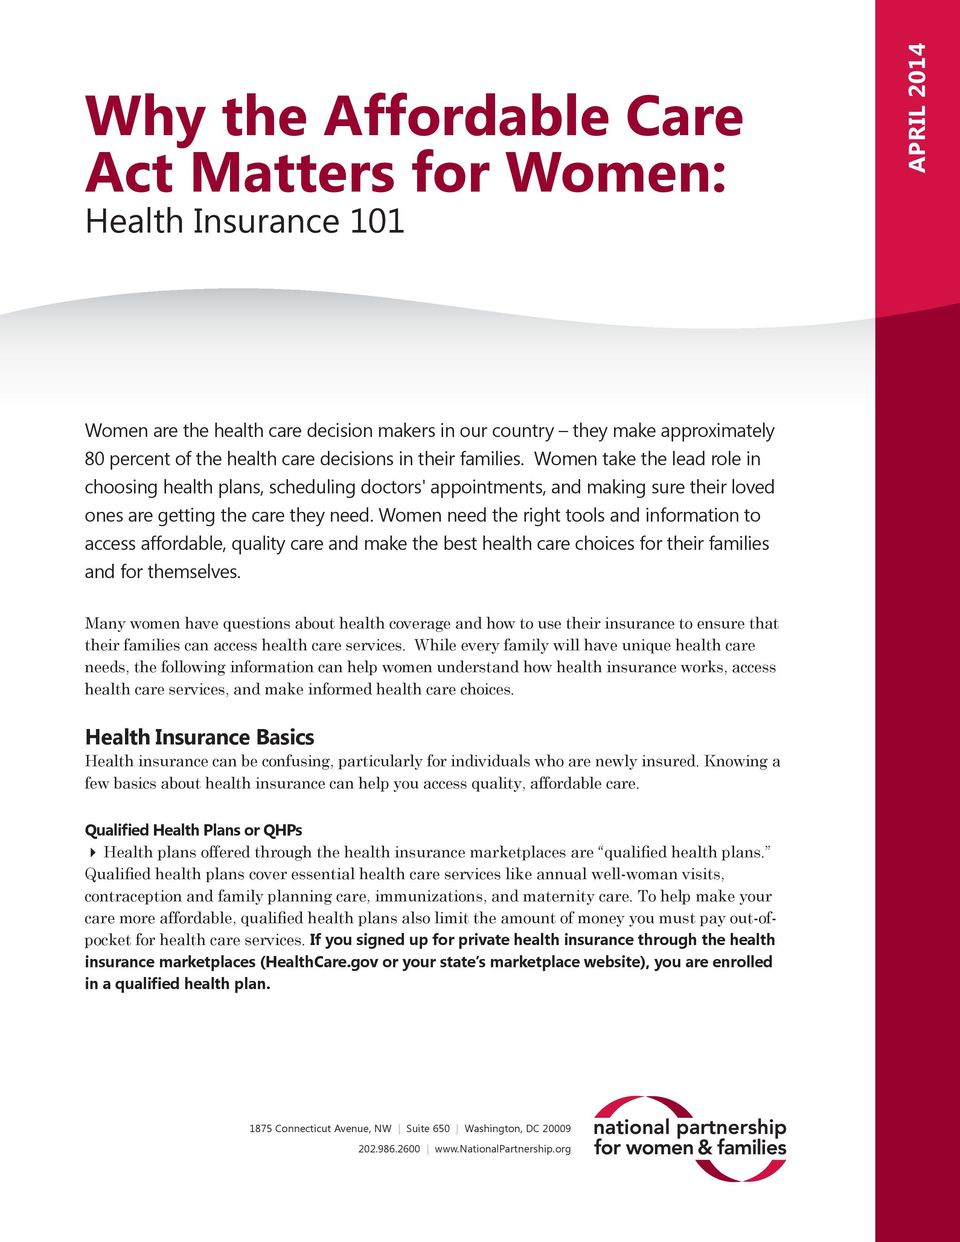 Women need the right tools and information to access affordable, quality care and make the best health care choices for their families and for themselves.